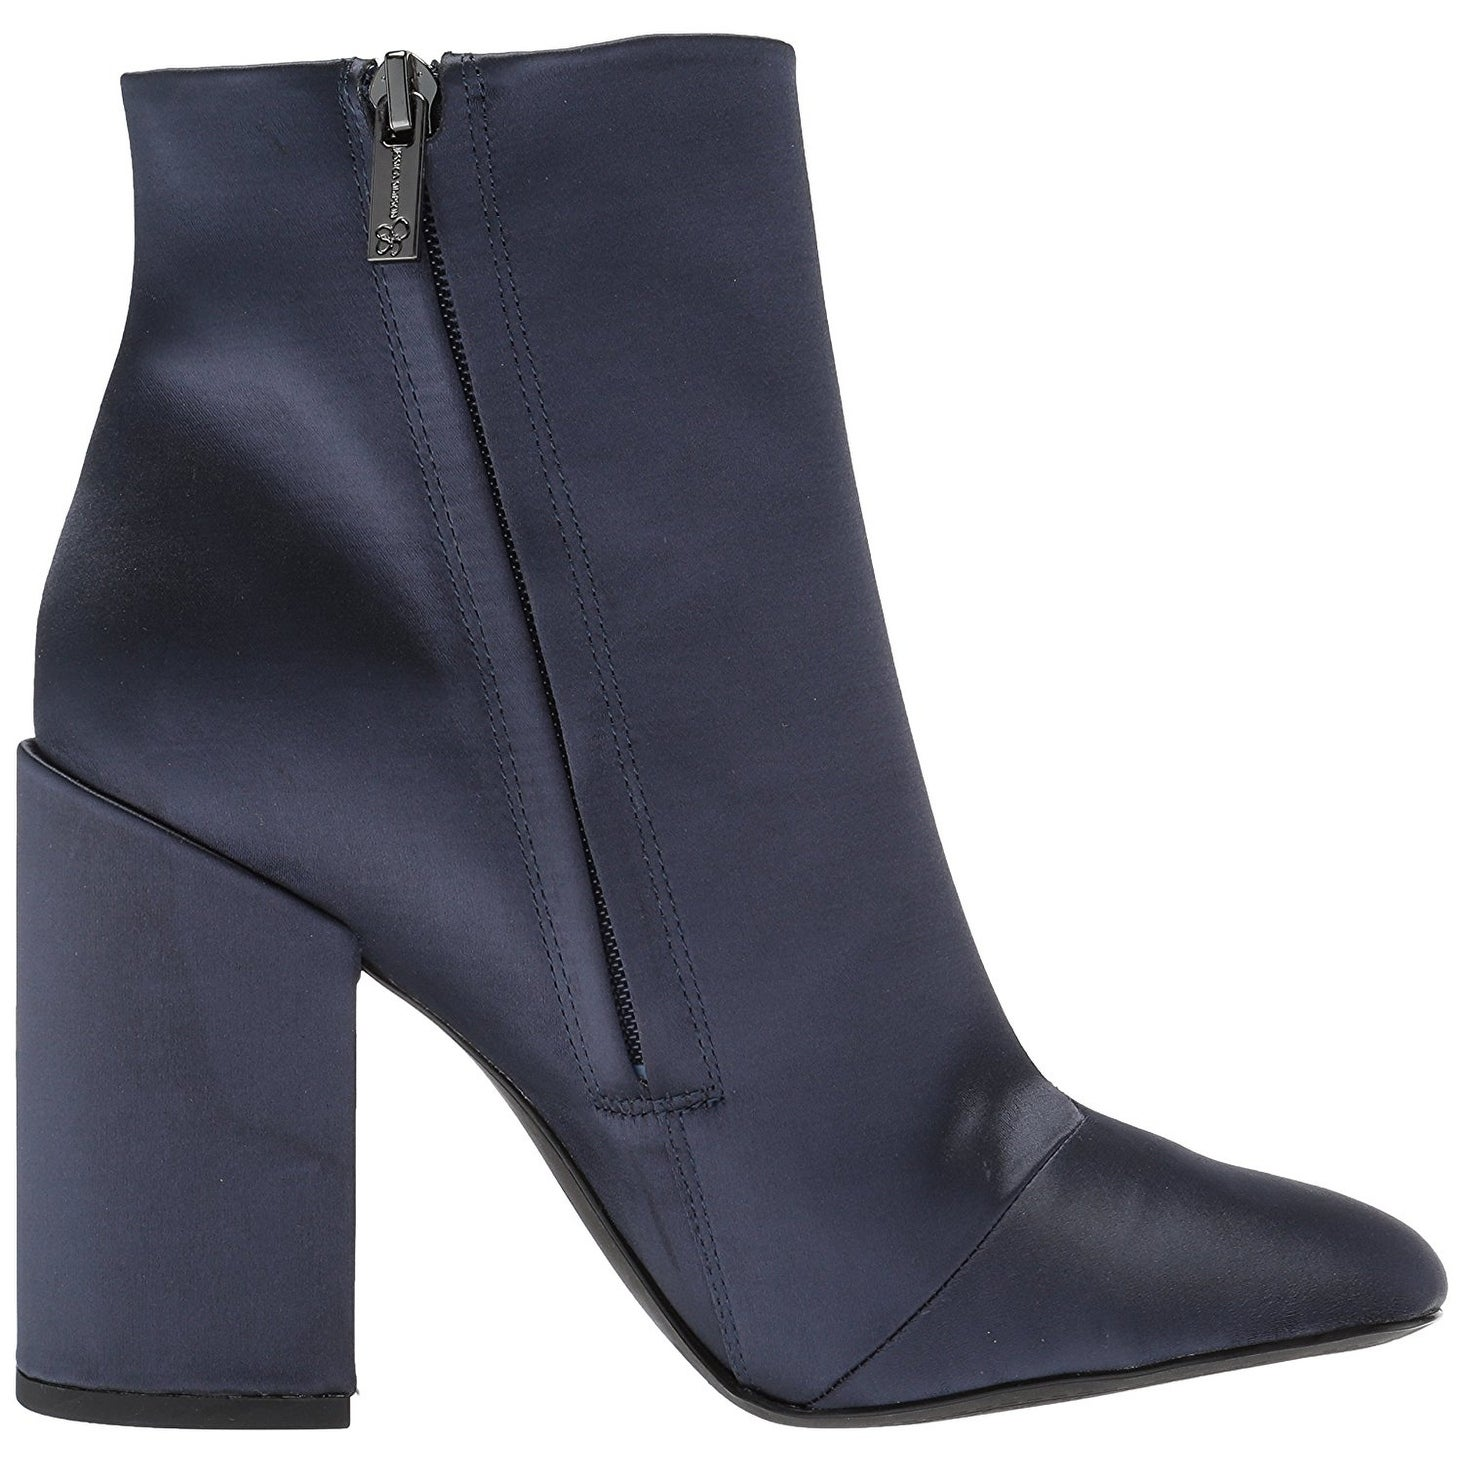 956c01762db Shop Jessica Simpson Womens Windee Closed Toe Ankle Fashion Boots - Free  Shipping On Orders Over  45 - Overstock - 22338294